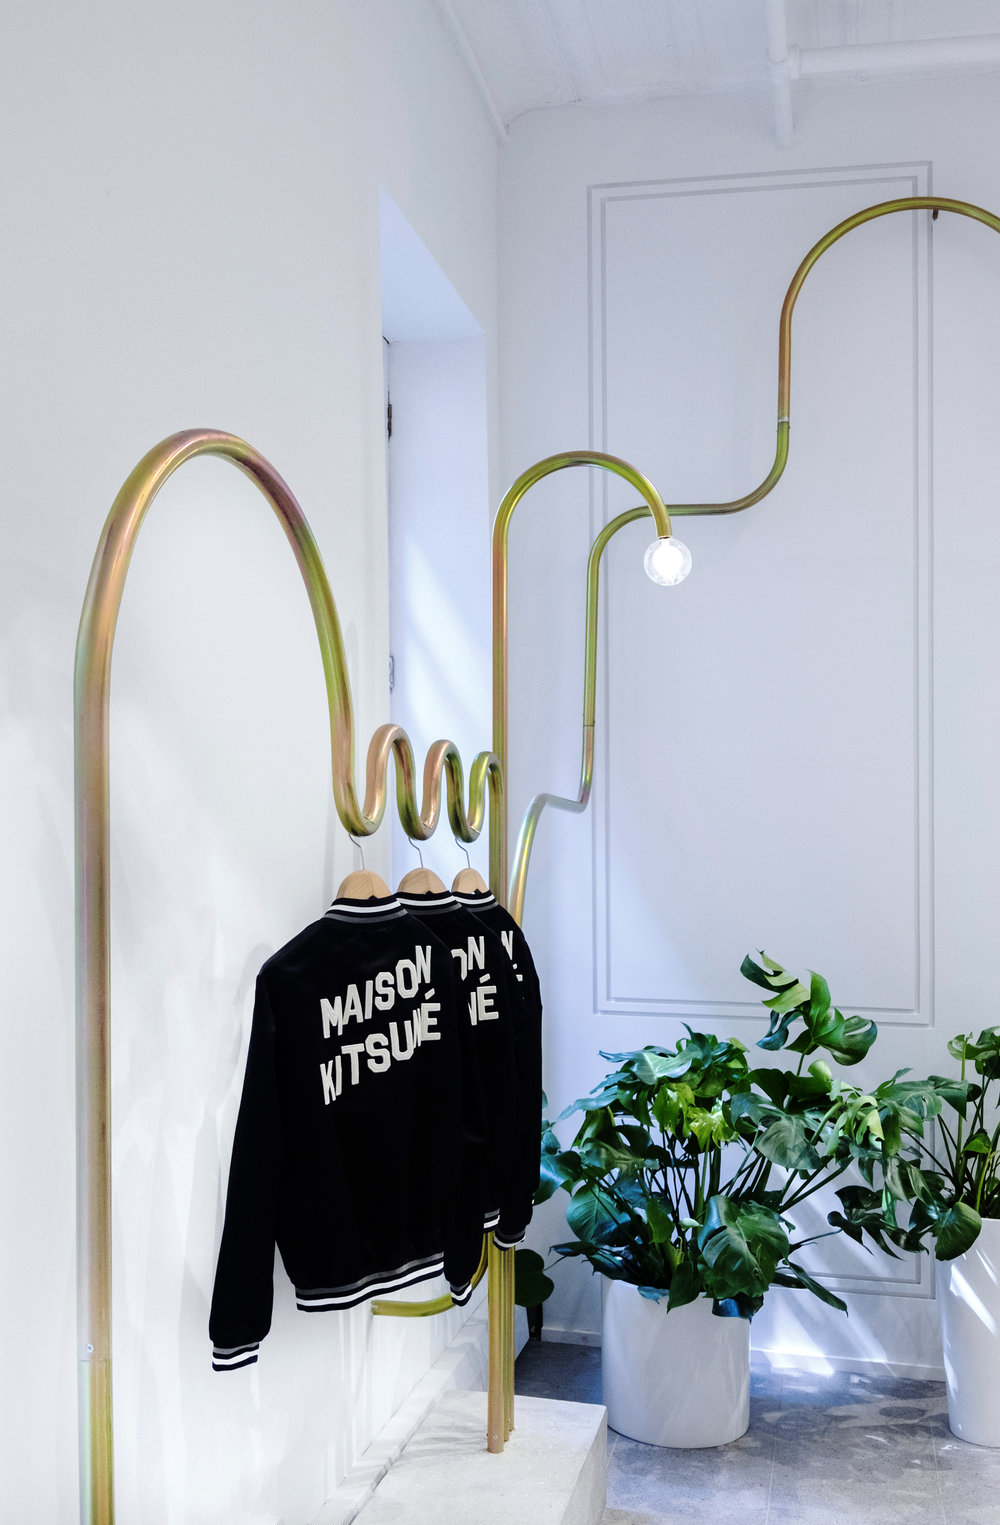 Maison Kitsuné, New York City